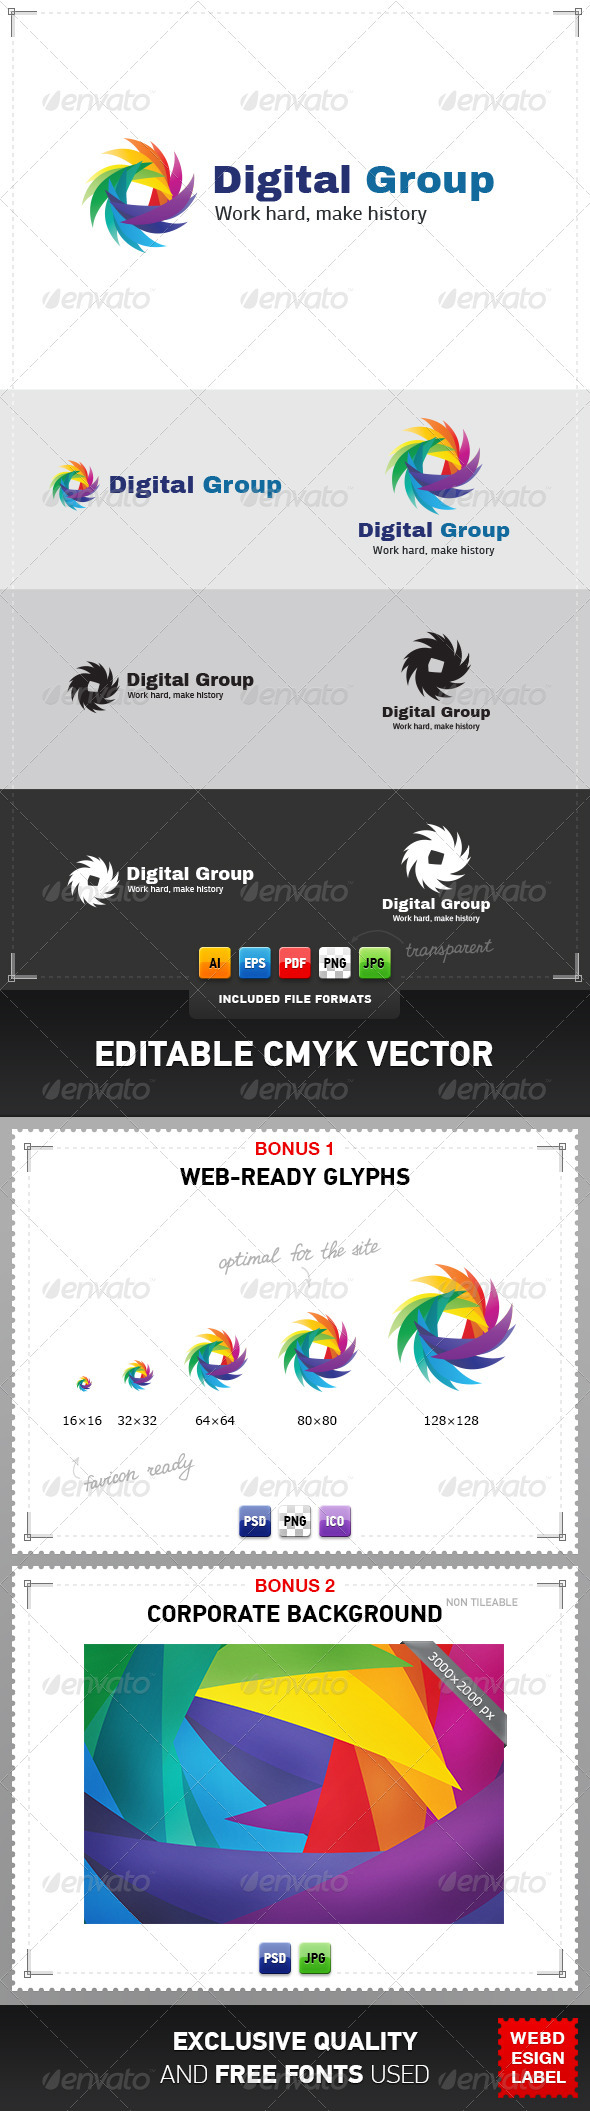 GraphicRiver Digital Group Logo 3828047